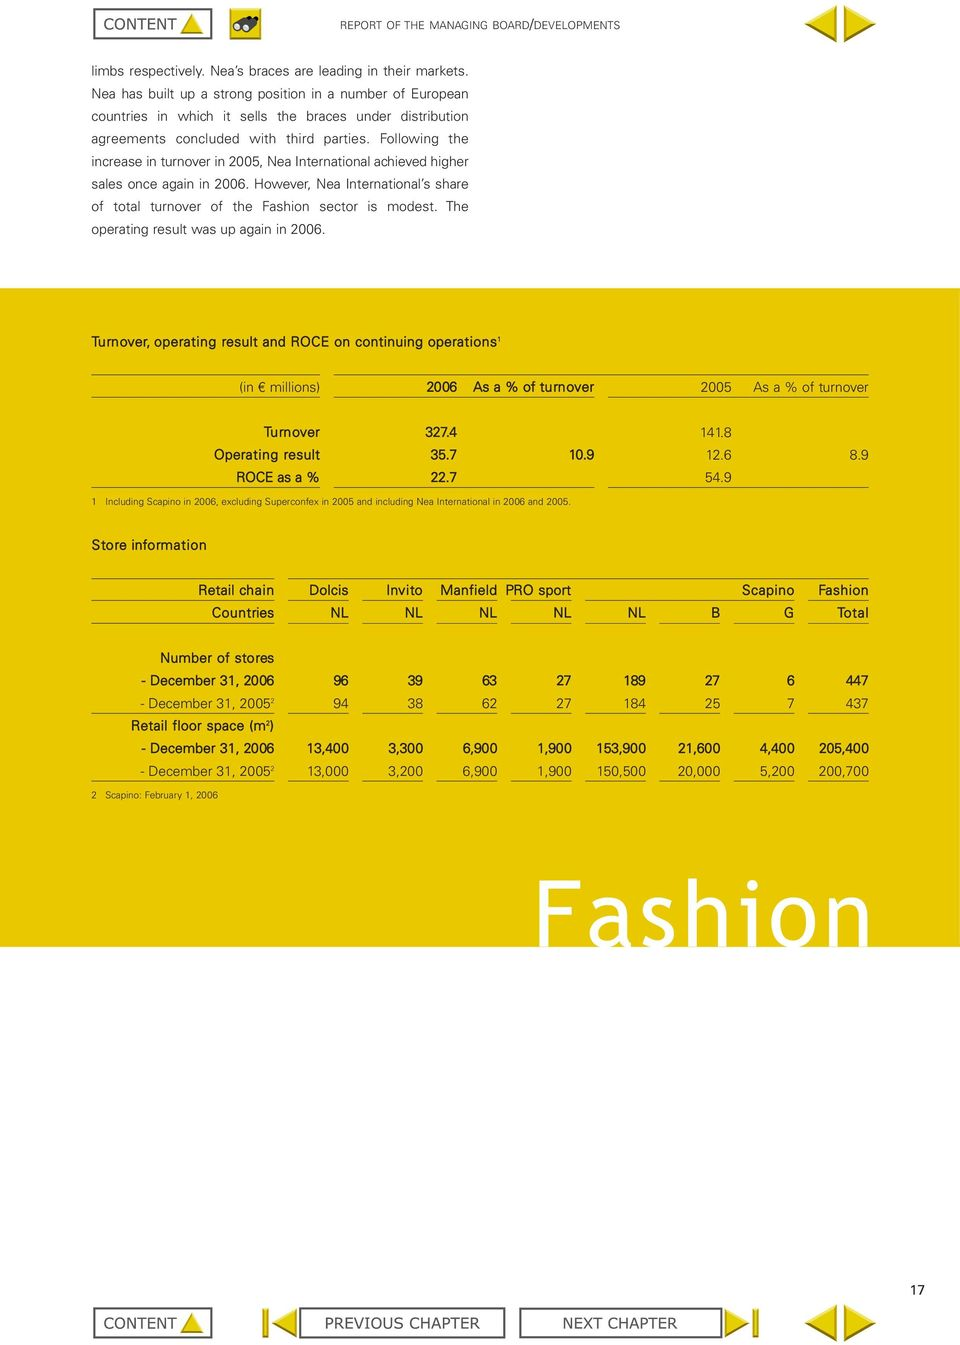 Following the increase in turnover in 2005, Nea International achieved higher sales once again in 2006. However, Nea International s share of total turnover of the Fashion sector is modest.